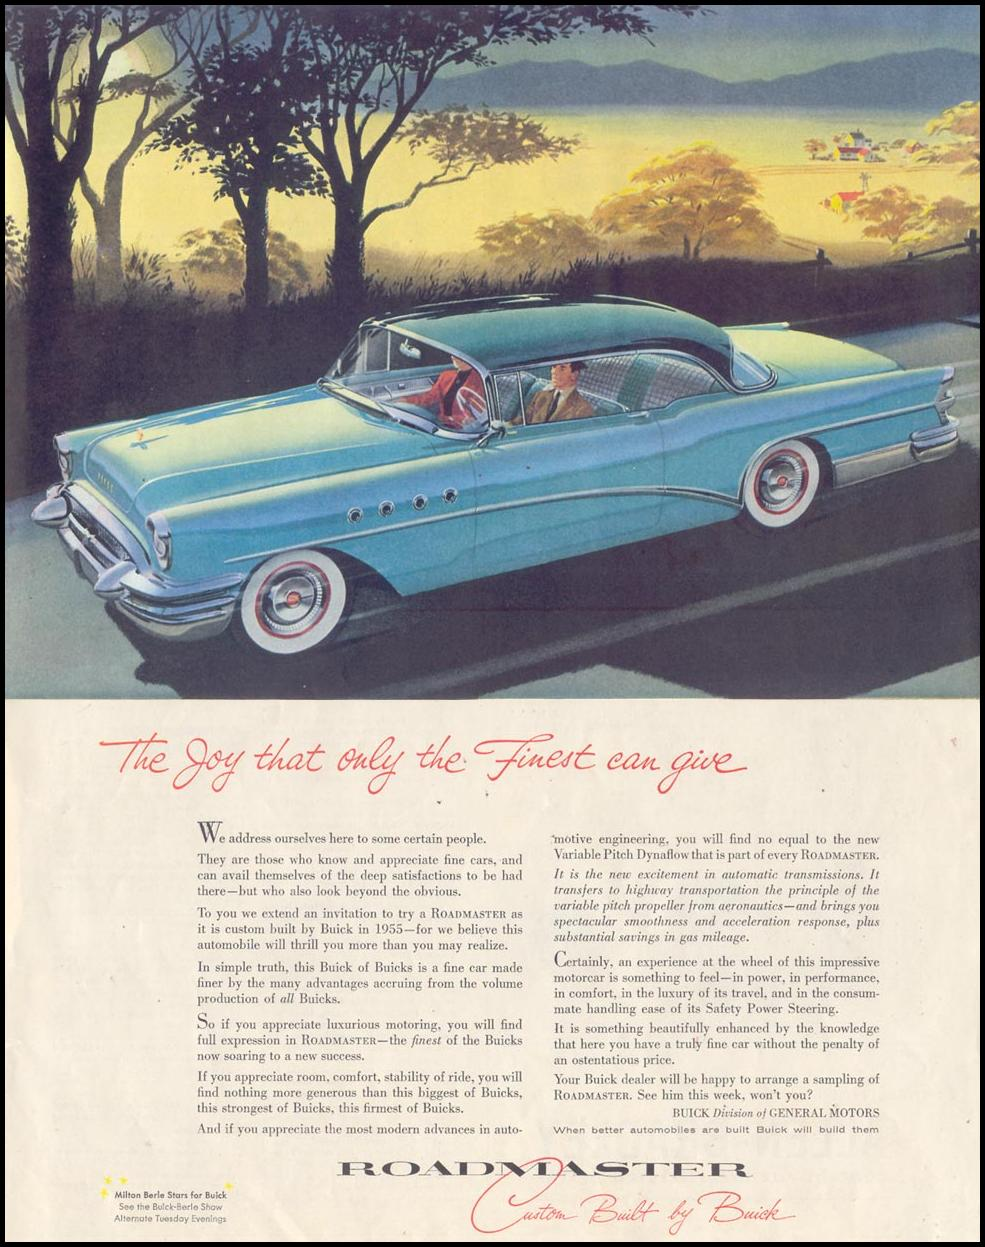 BUICK AUTOMOBILES SATURDAY EVENING POST 03/26/1955 p. 5